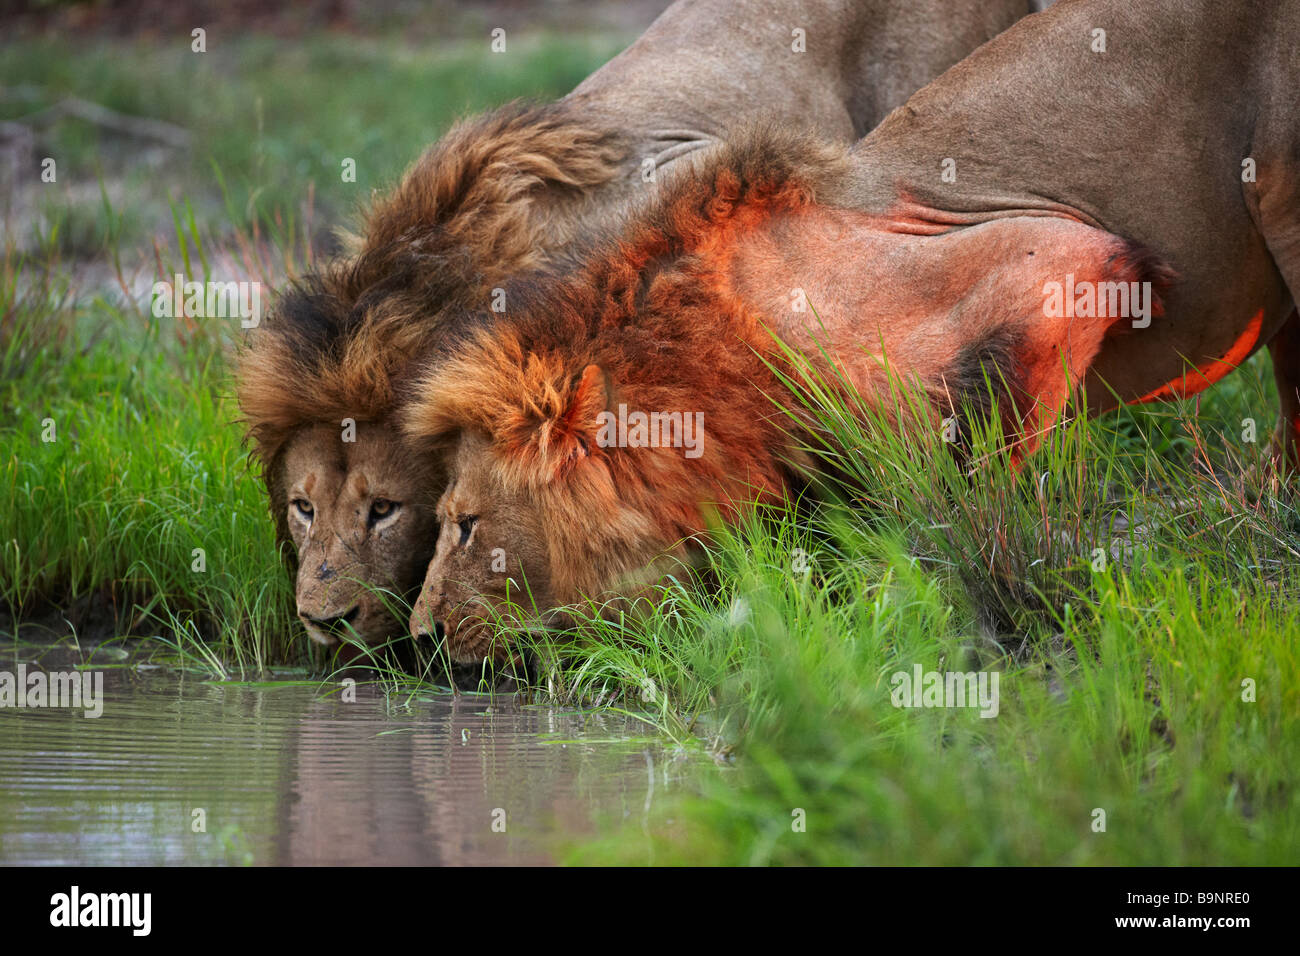 two lions drinking from a waterhole at dusk in the bush, Kruger National Park, South Africa - Stock Image